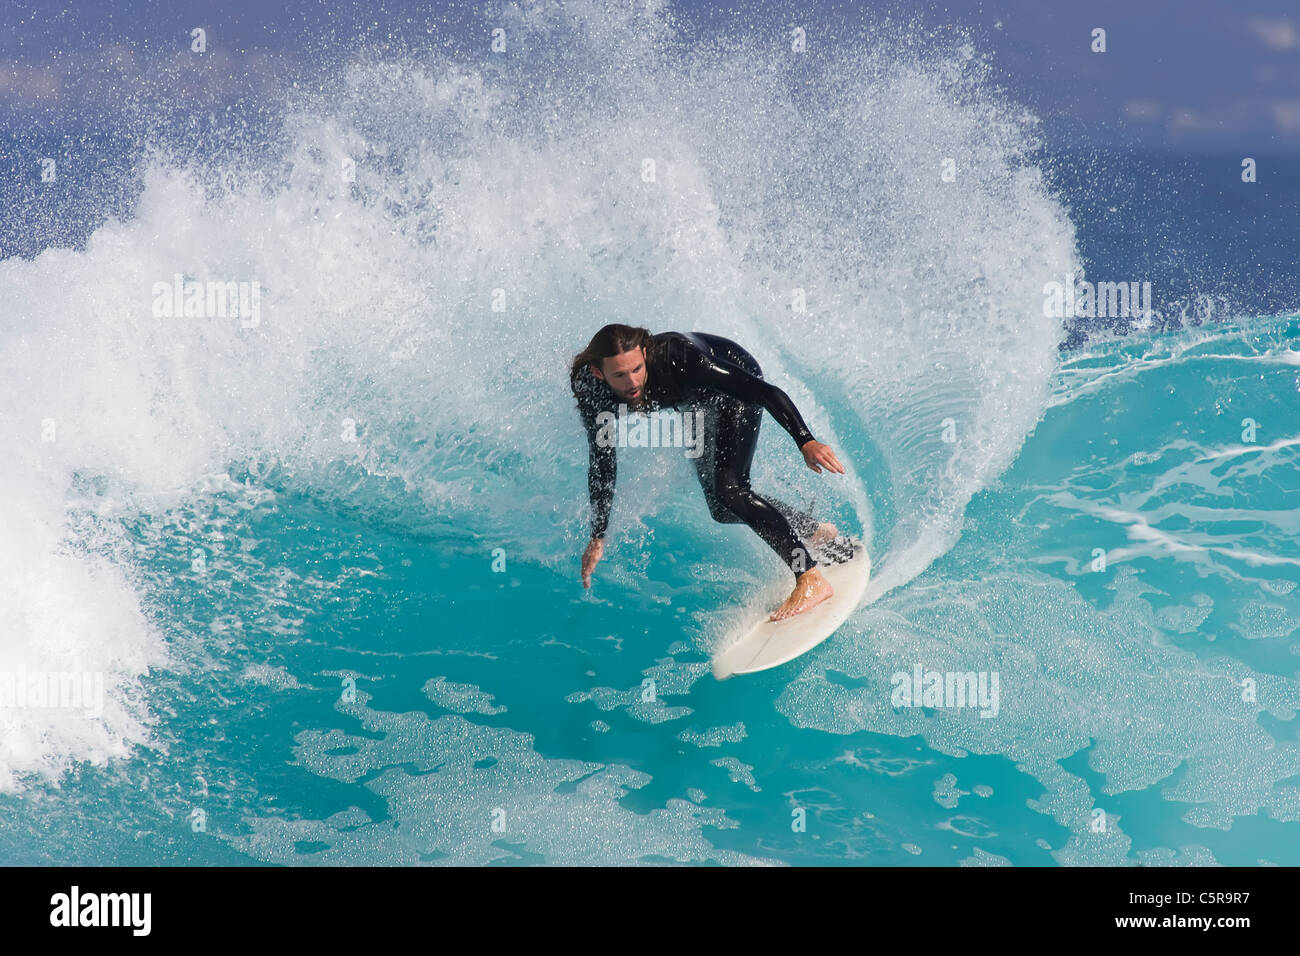 Surfer rides along azure blue wave. - Stock Image